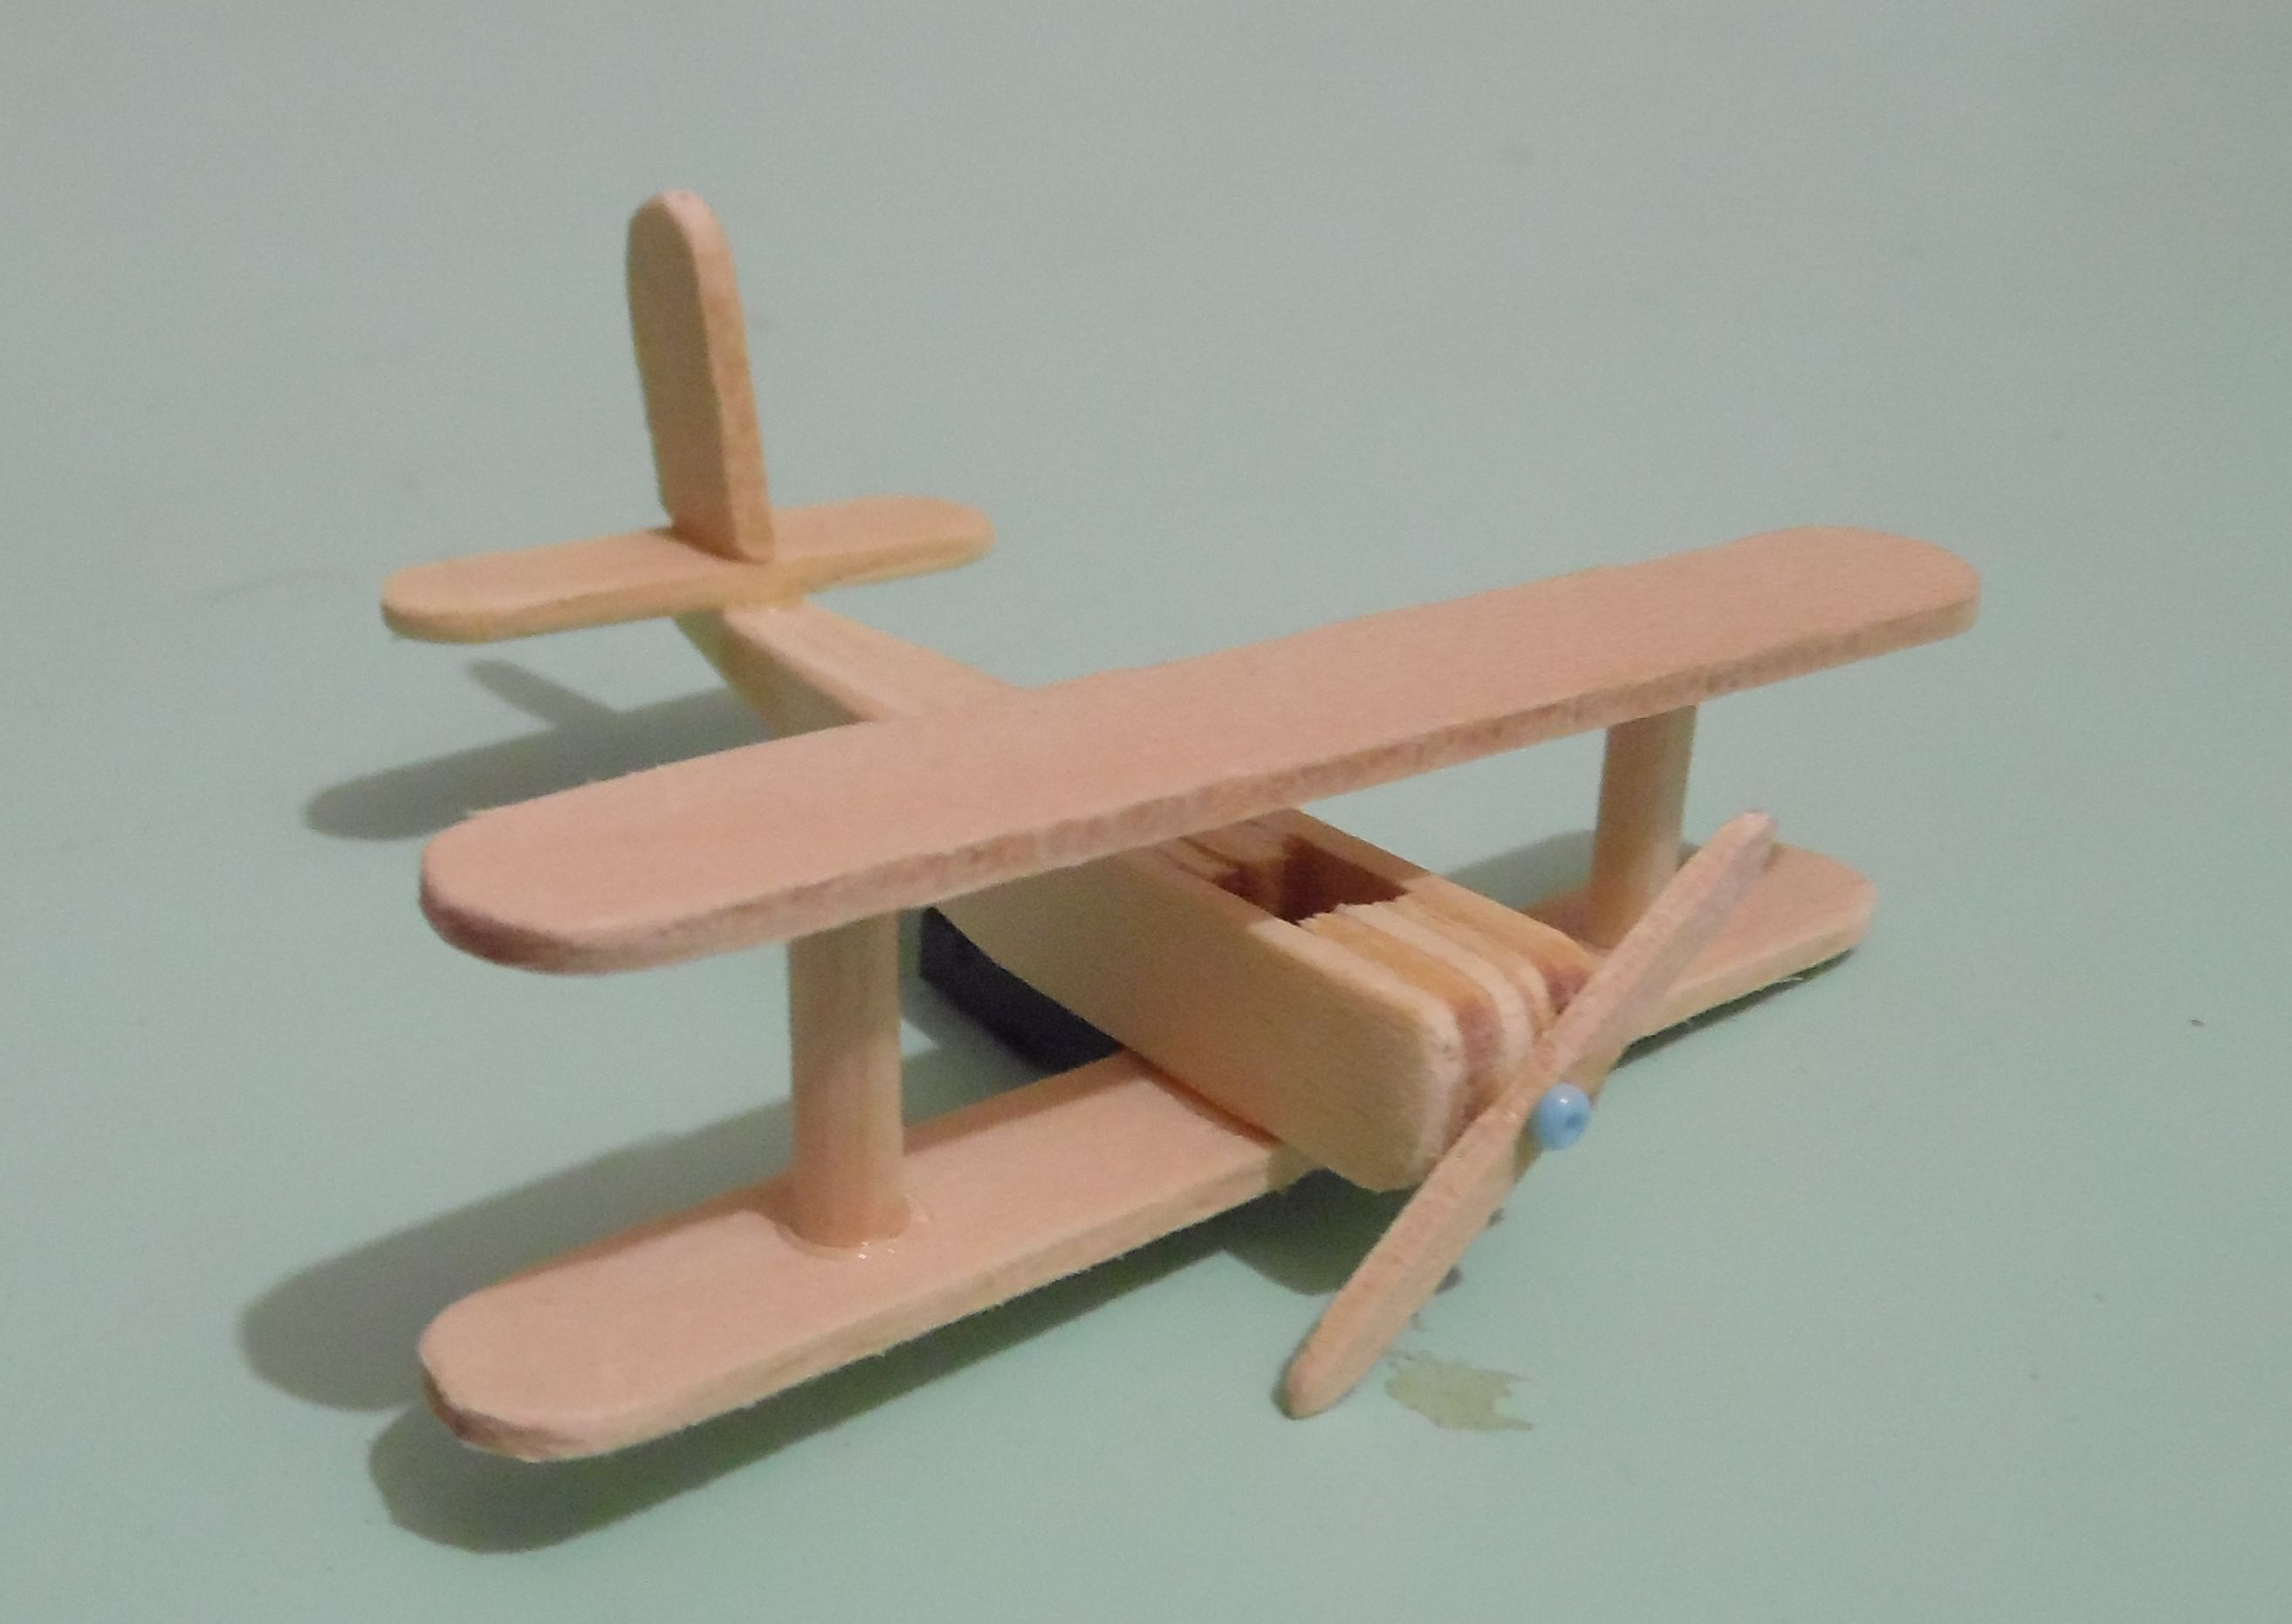 instructions for how to build a plane with popsicle sticks